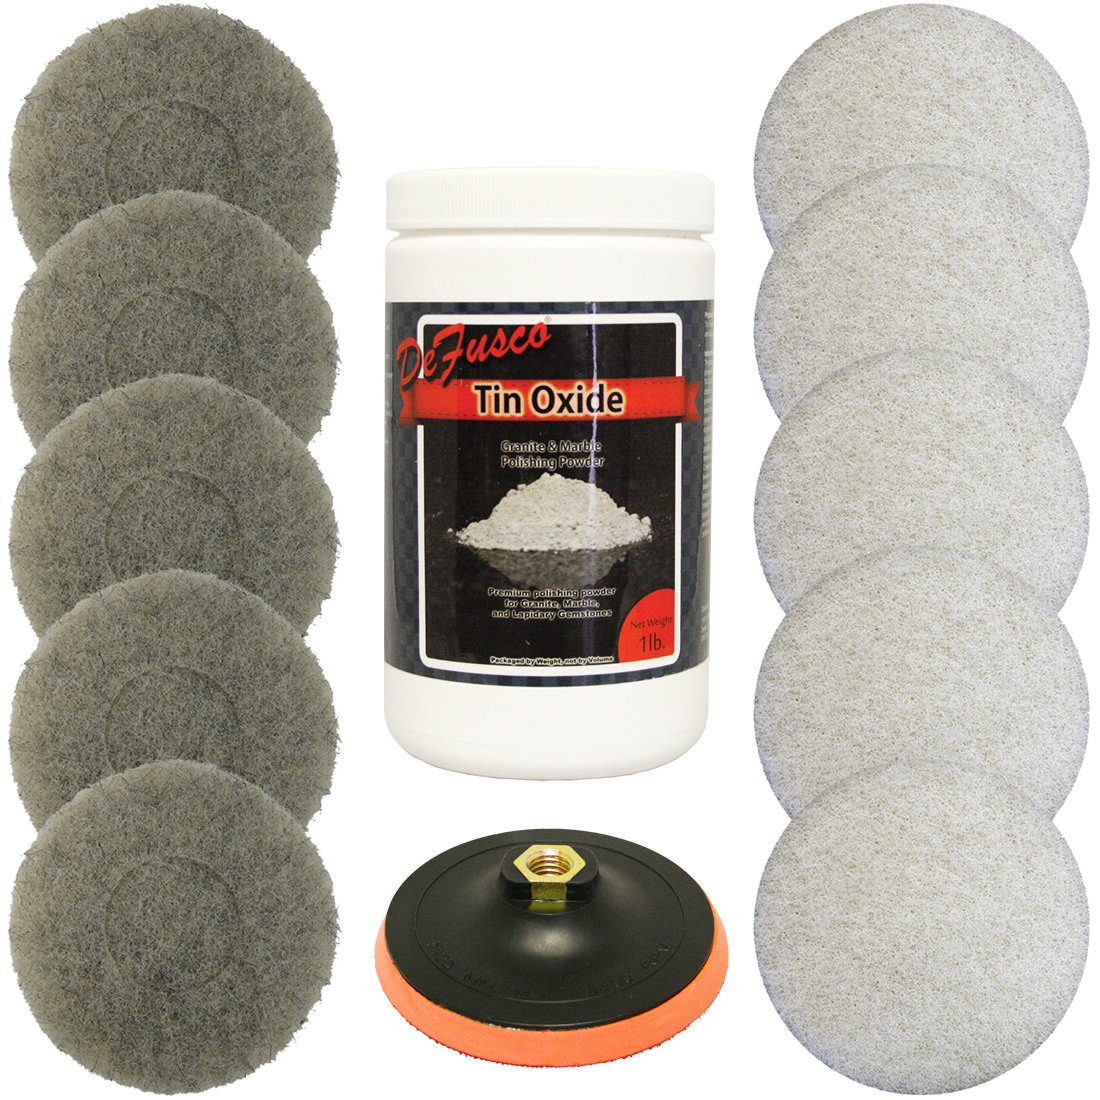 Tin Oxide Bundle With Backer Pad For Polishing by Norton Abrasives - St. Gobain